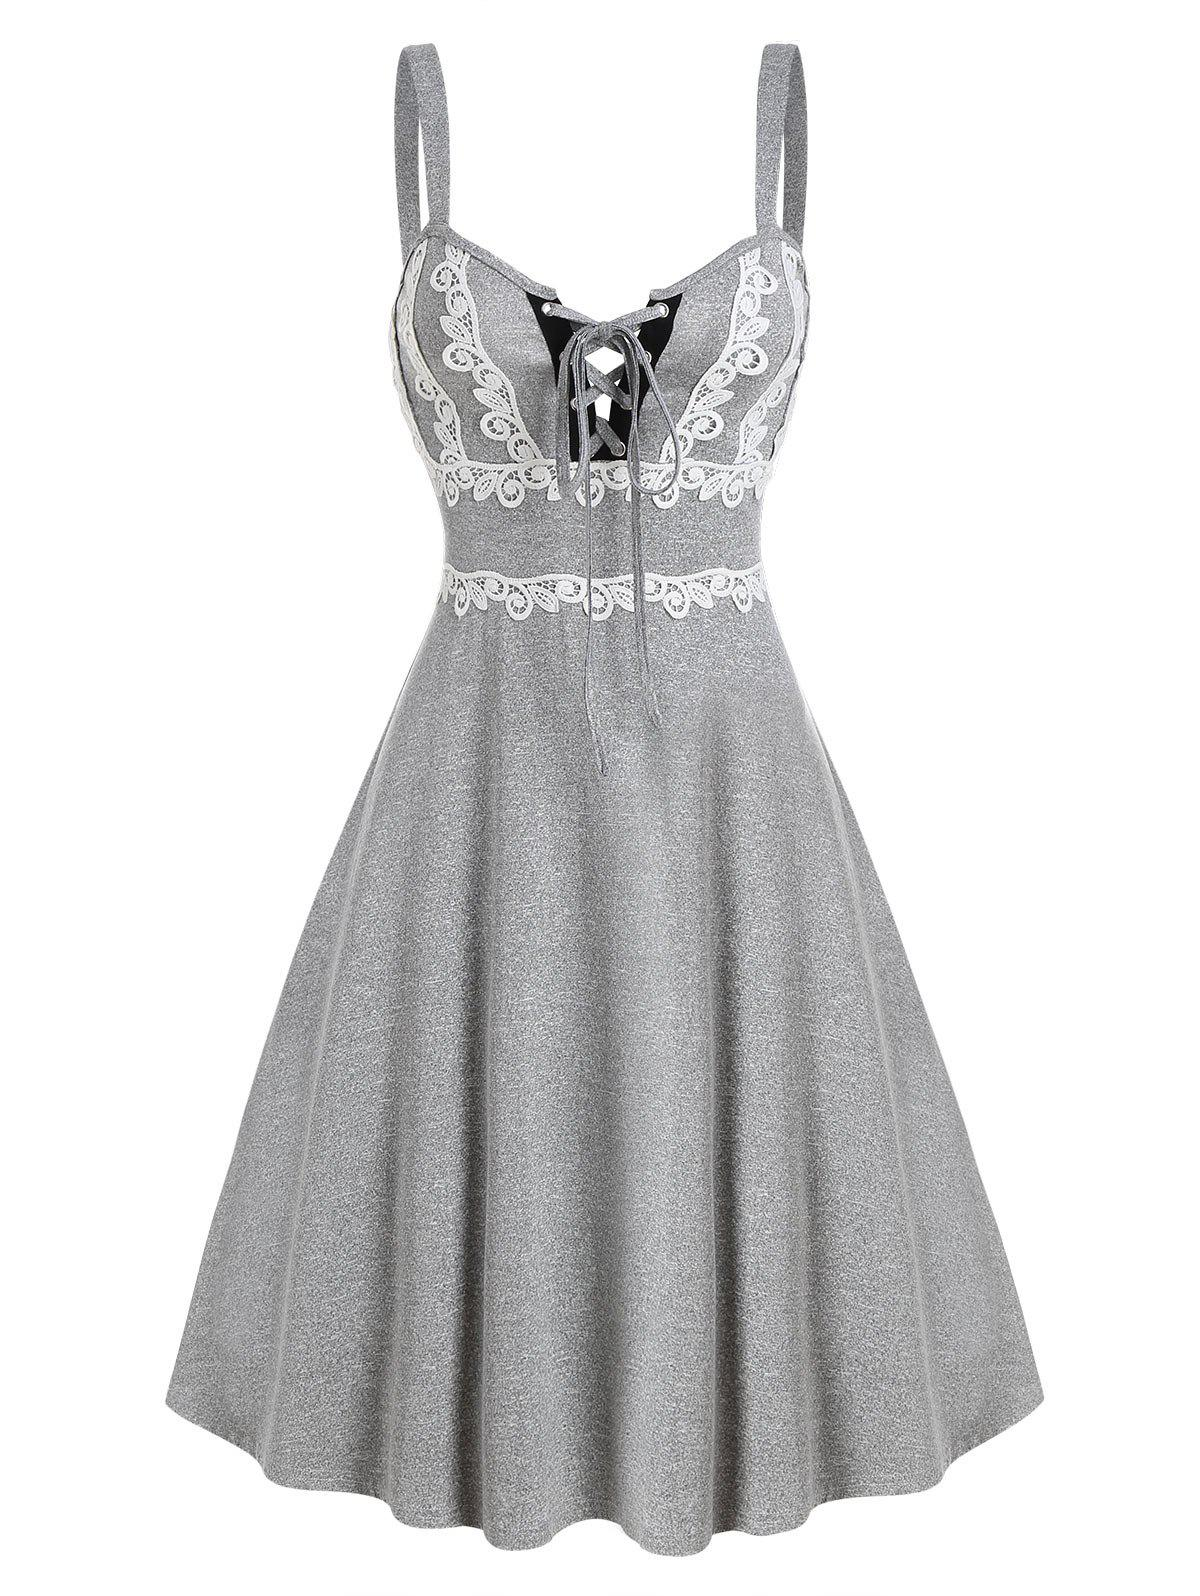 Lace Up Lace Insert Mini Cami Dress - LIGHT GRAY XL